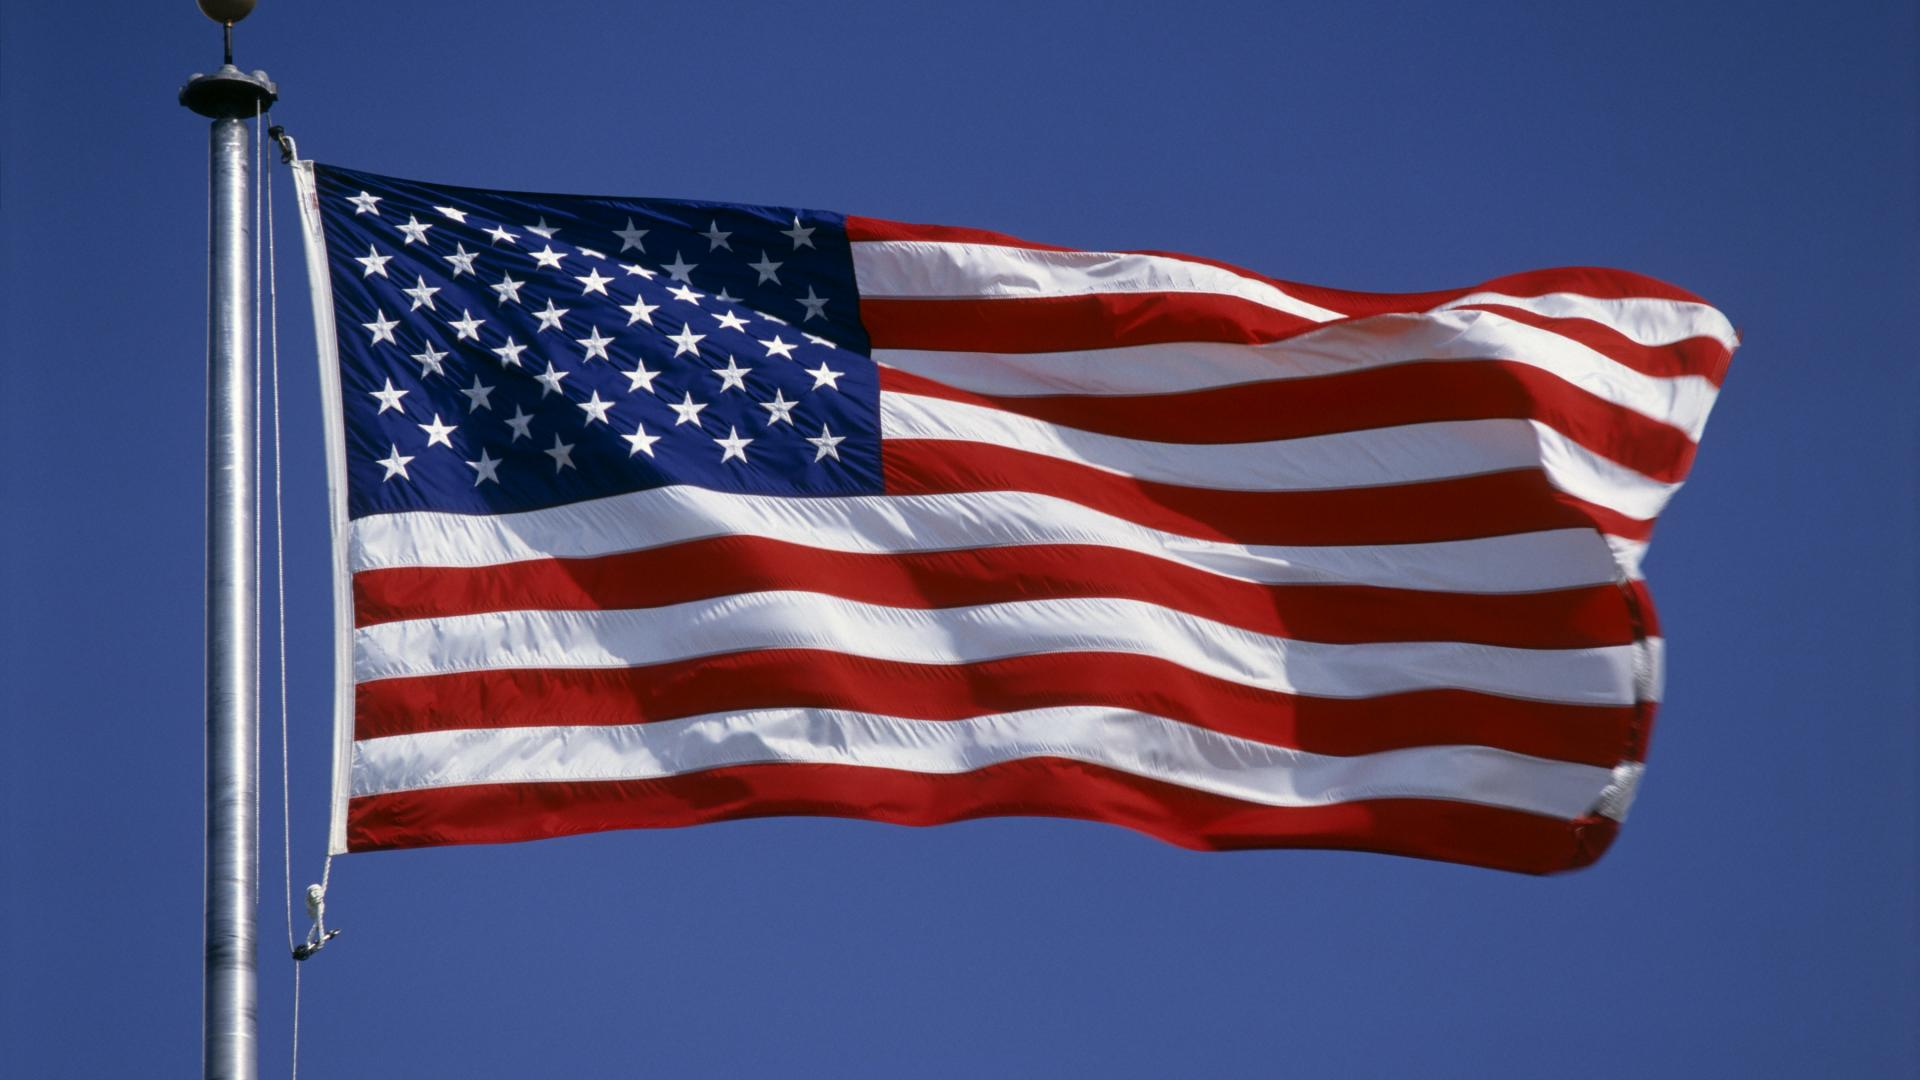 American flag wallpaper 1920x1080 for Usa wallpaper